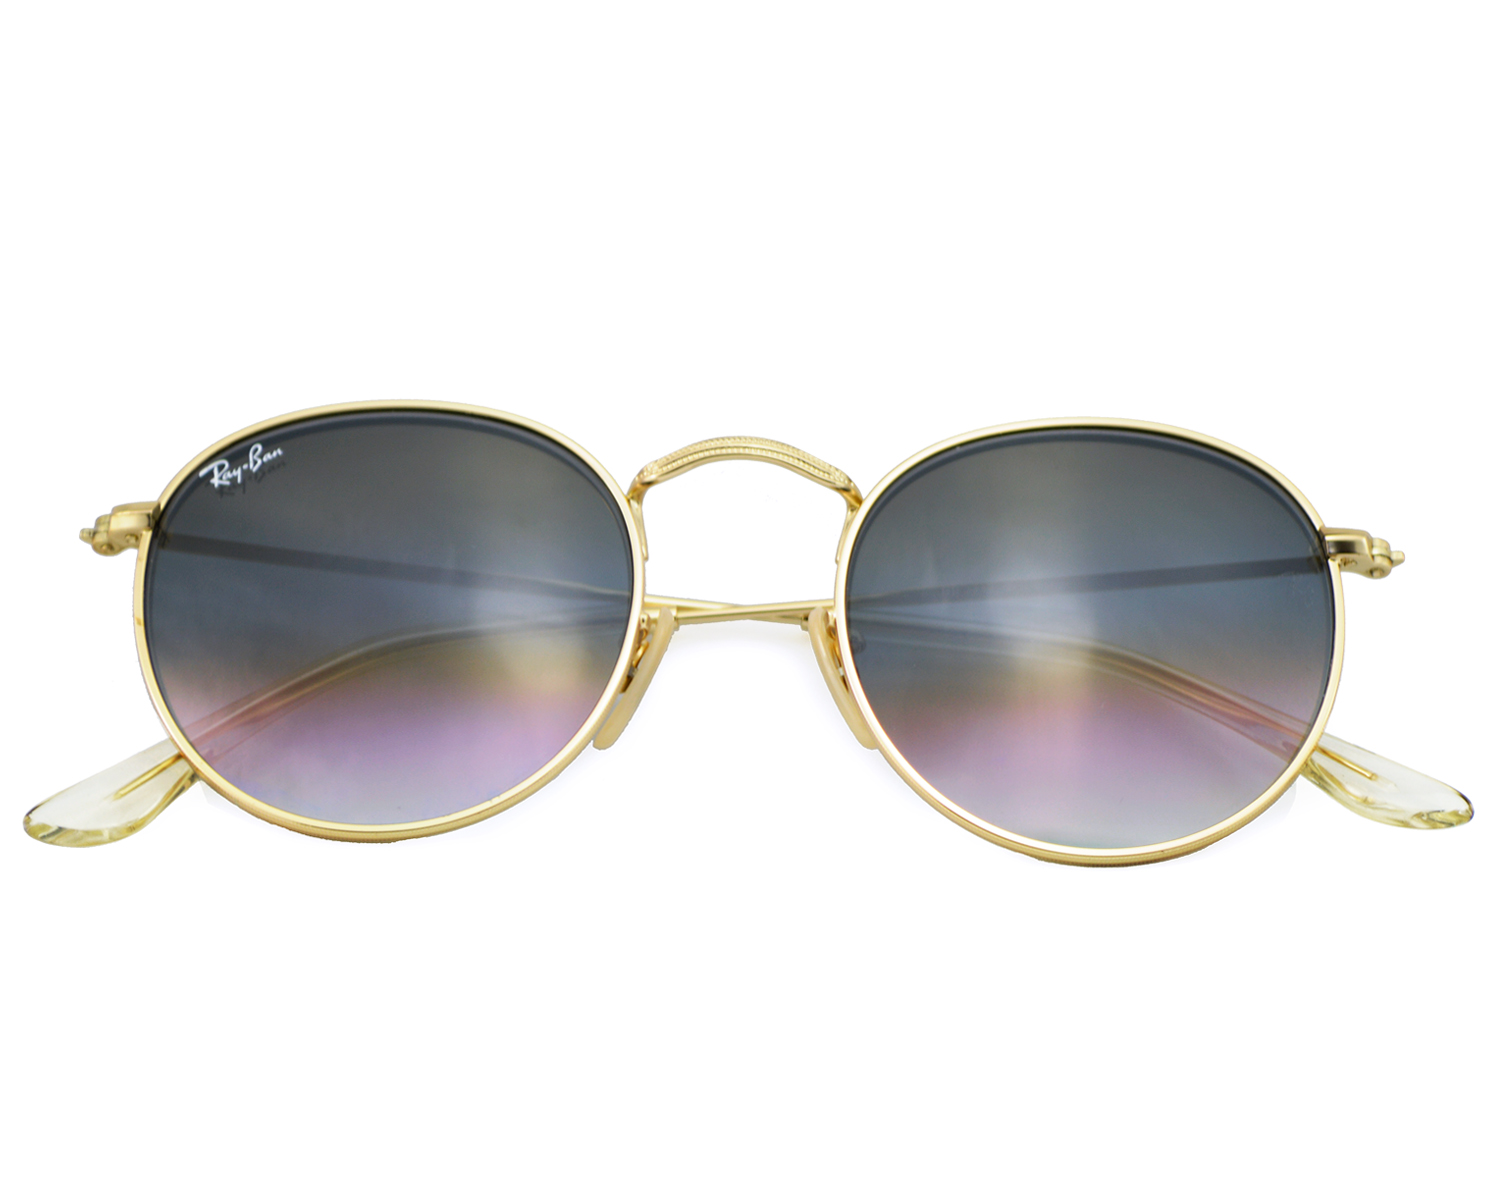 2f335425af7ce Ray-Ban RB3447 Round Metal 112 32 Gold Frame Grey Gradient ...